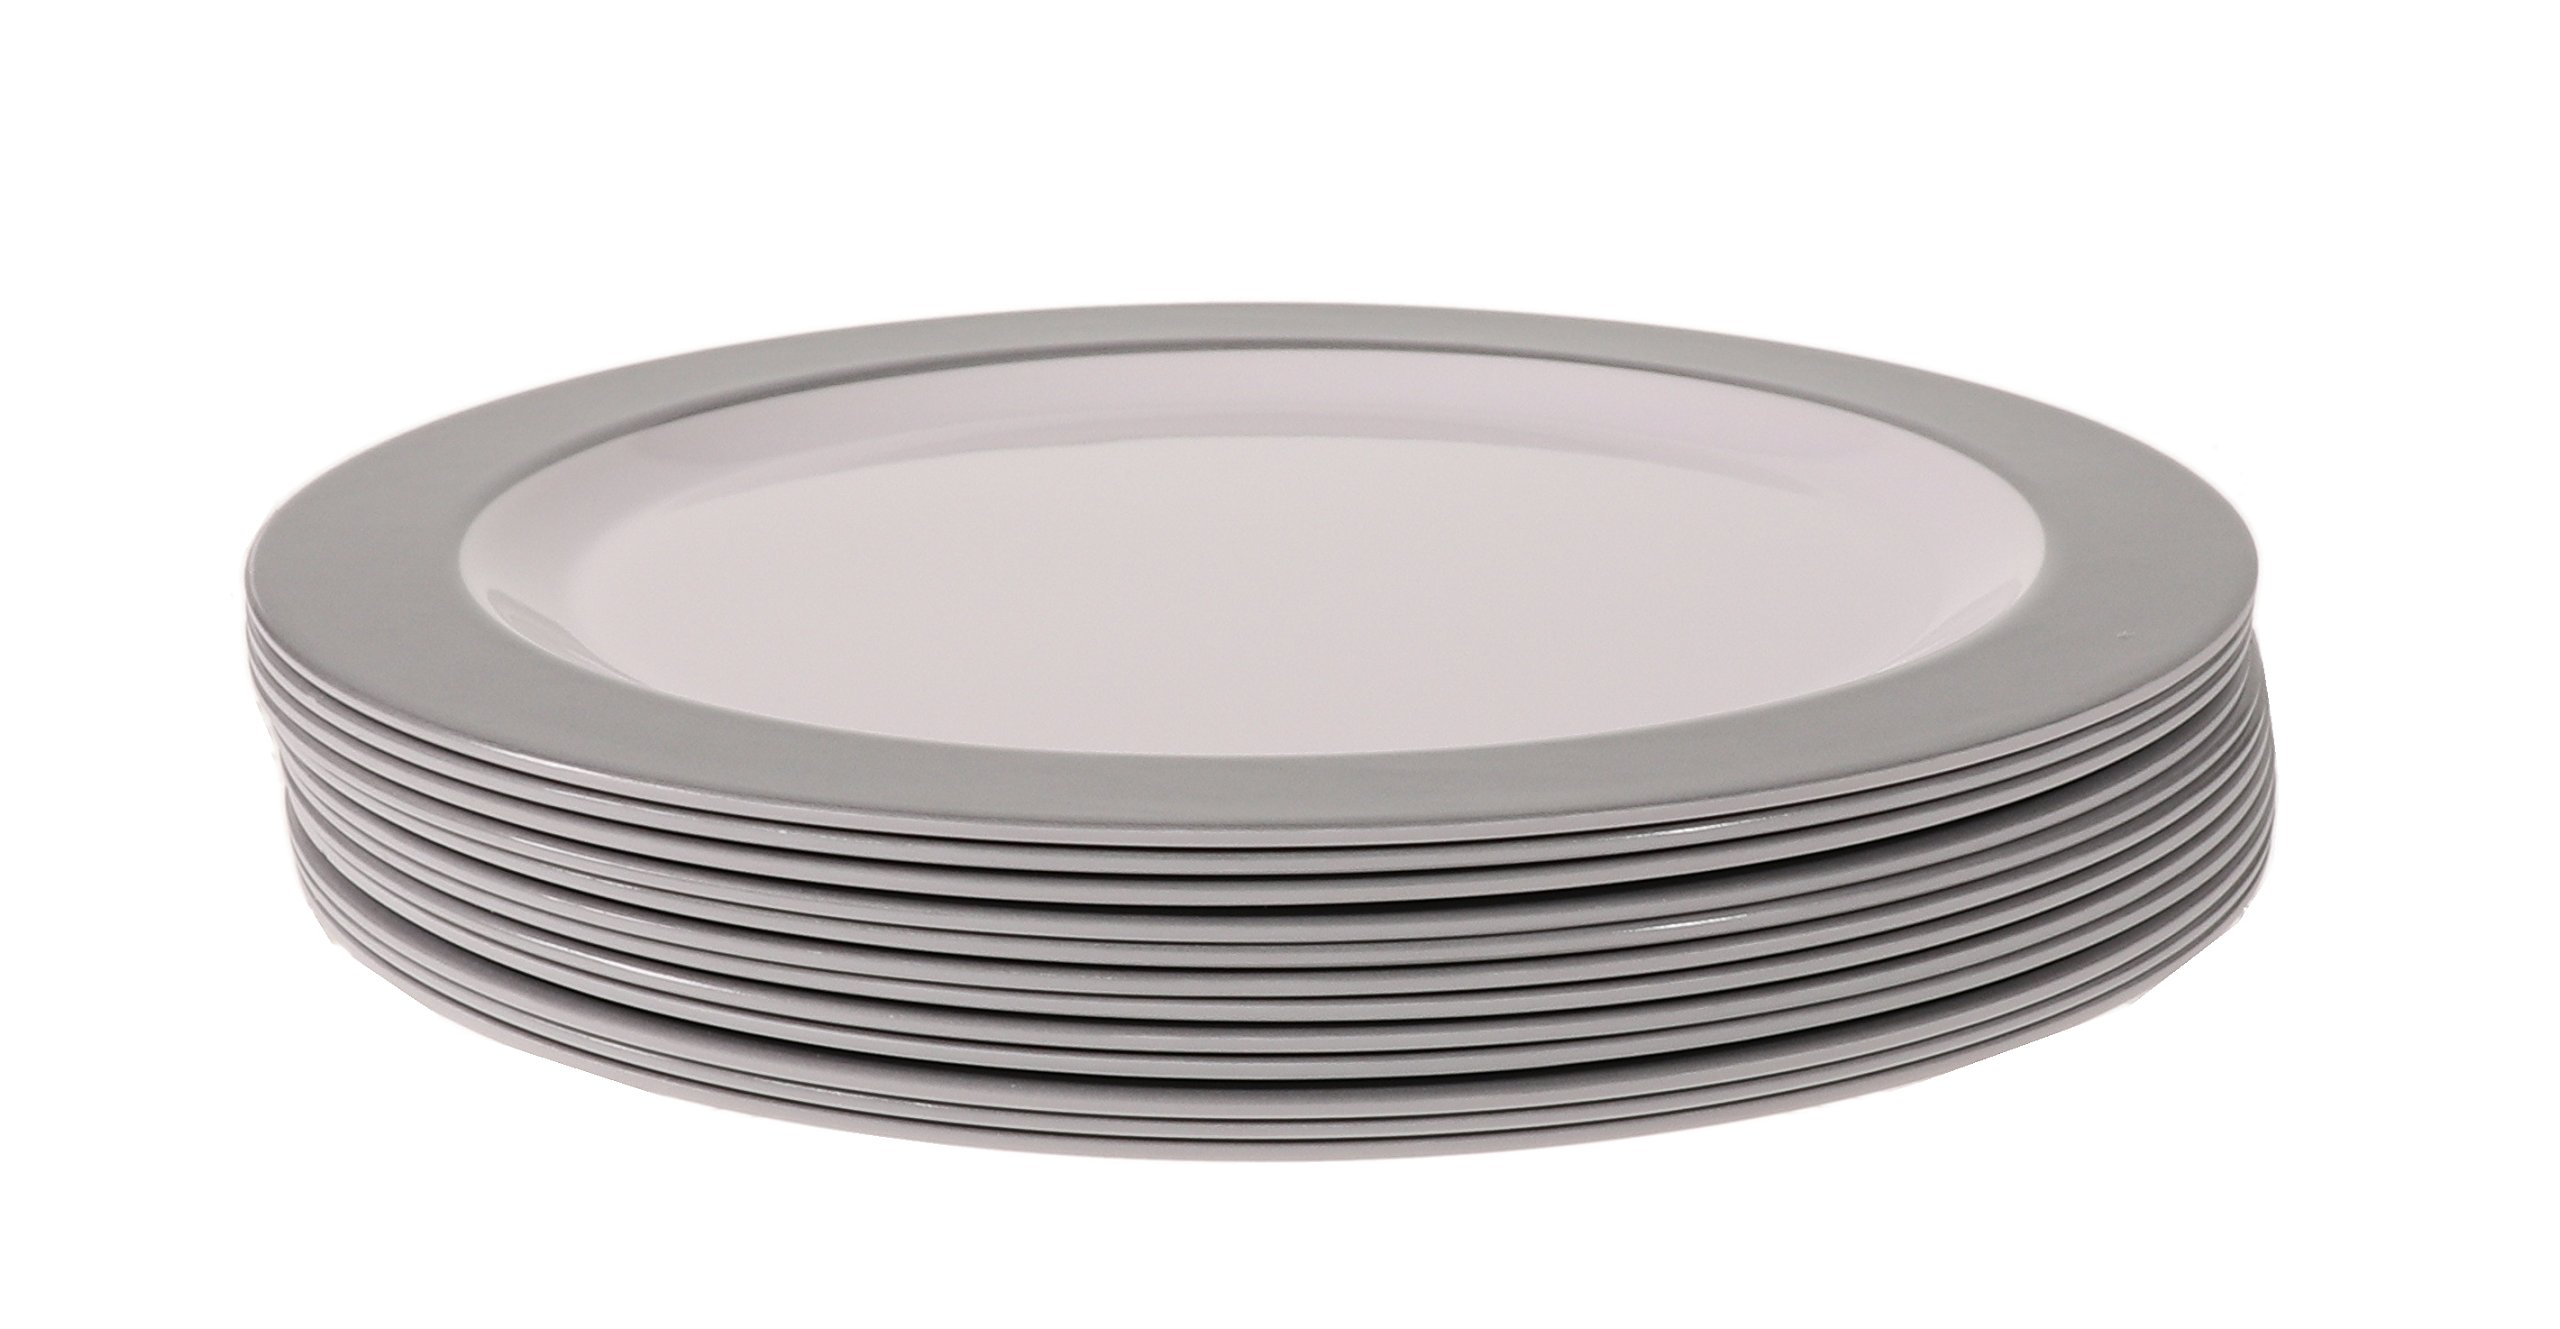 Handi-Ware 12-Piece Party Bulk Pack Signature Melamine Blend Set - Classic Wide Rim Design - Indoor/Outdoor Reusable Dinnerware - Great Paper Plate Replacement! - by Unity (10.5'' Dinner Plate, Silver)